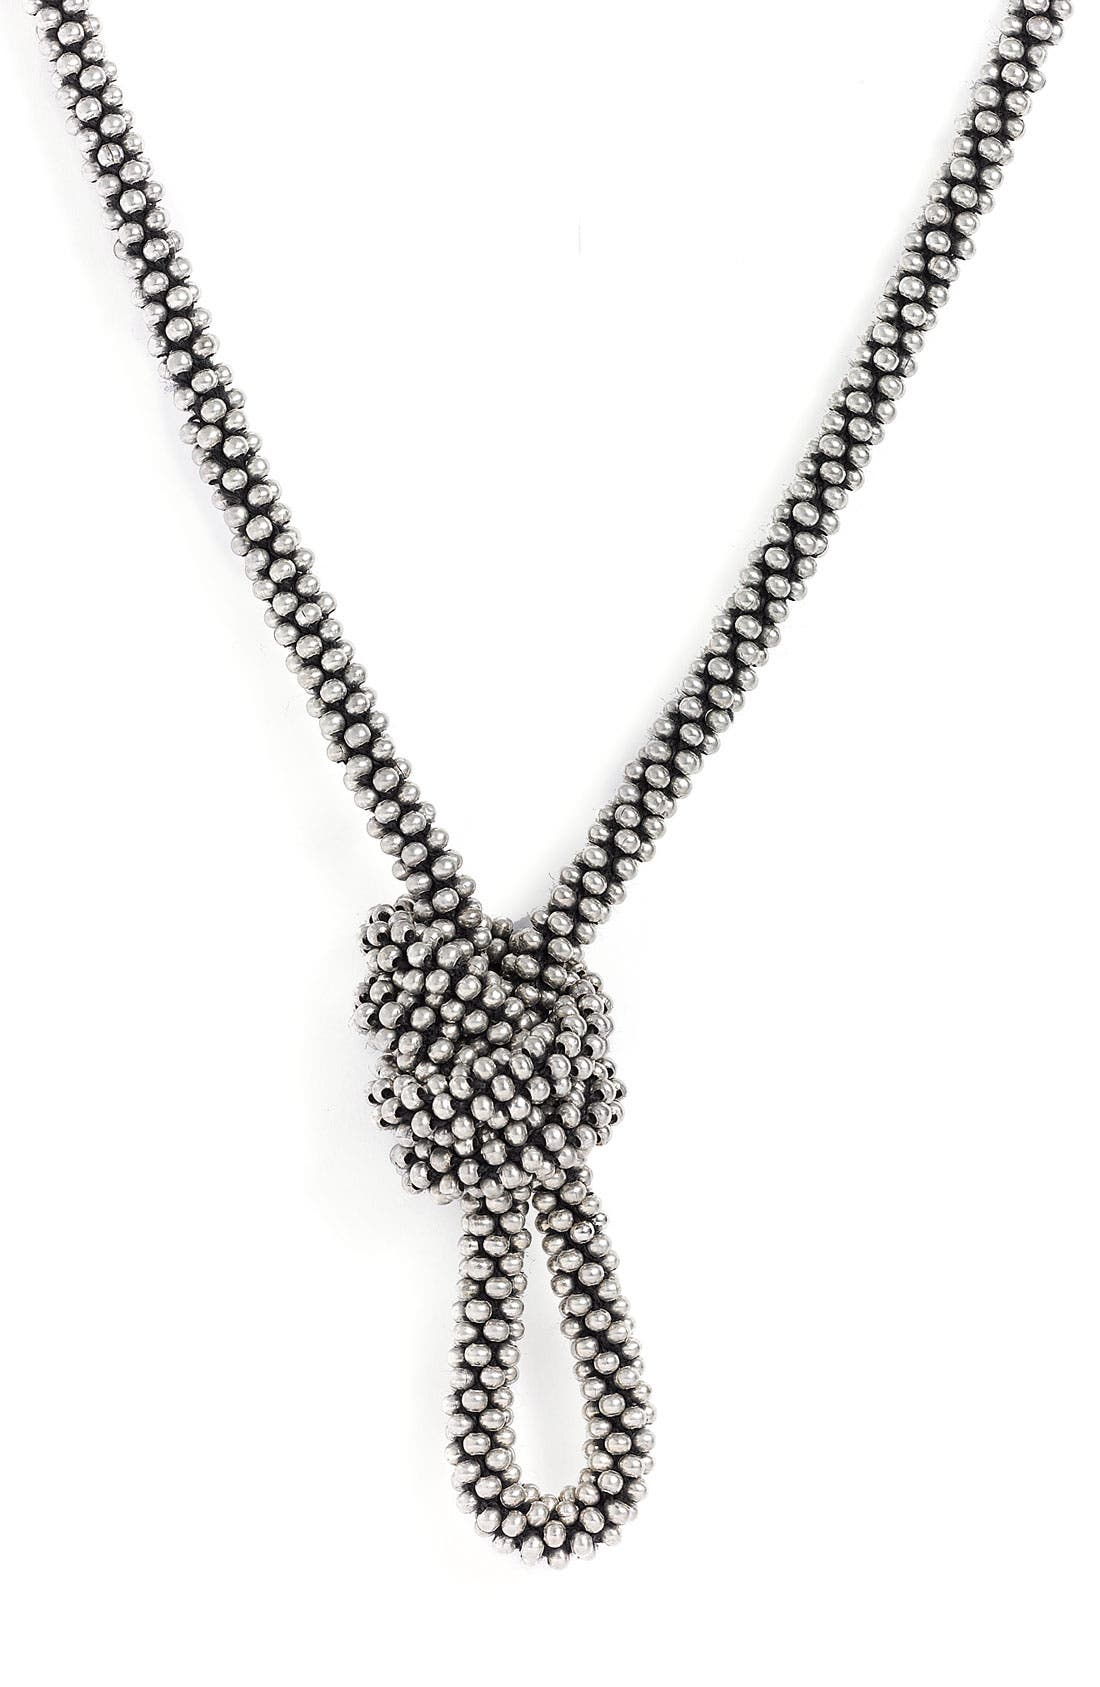 Alternate Image 1 Selected - Stephan & Co. 'Endless' Beaded Necklace